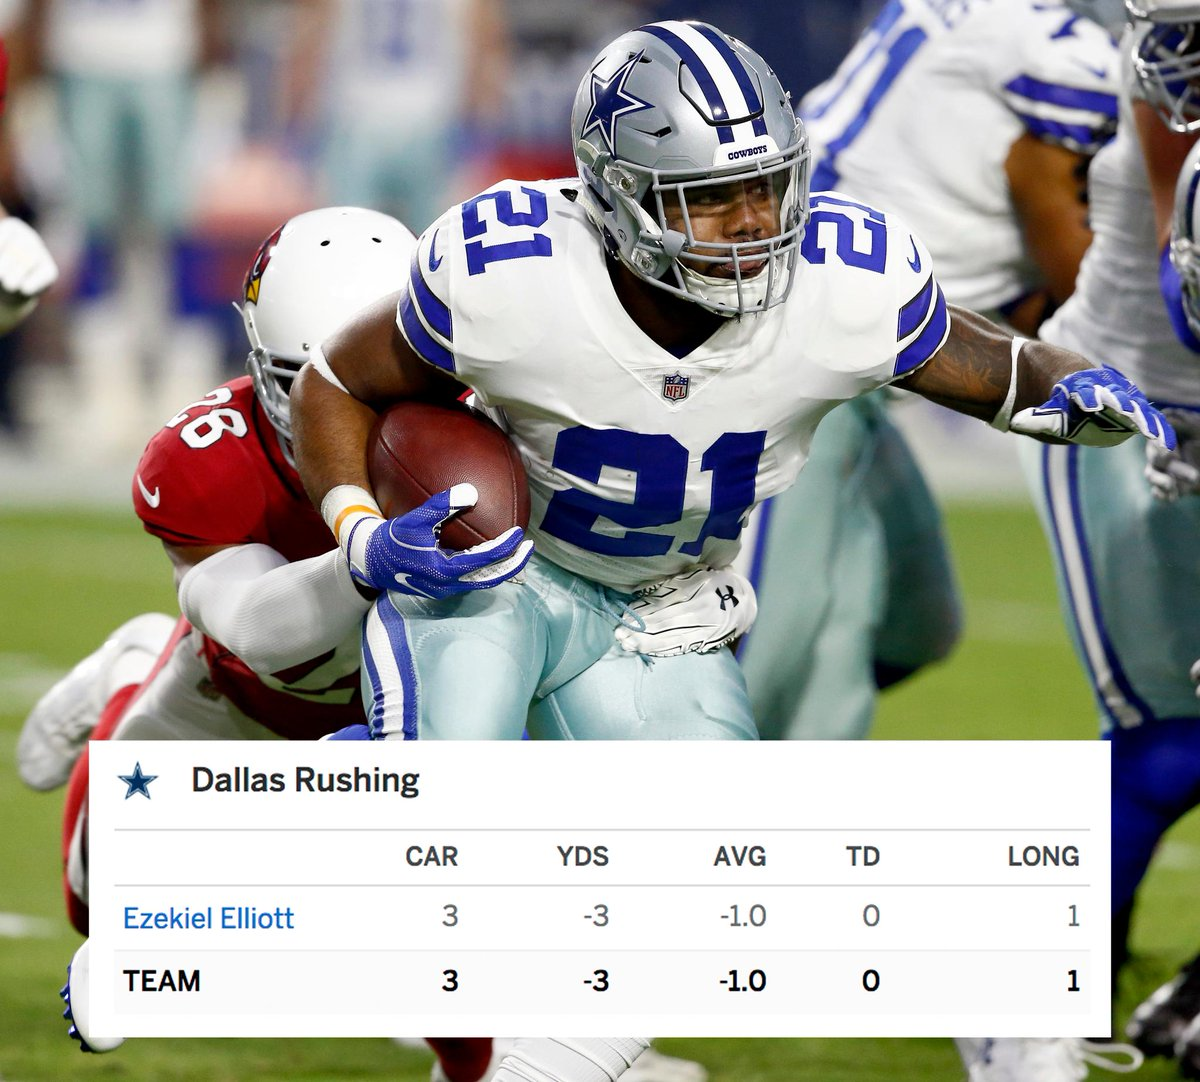 Another slow start for Zeke. https://t.co/AvaJm6so5M